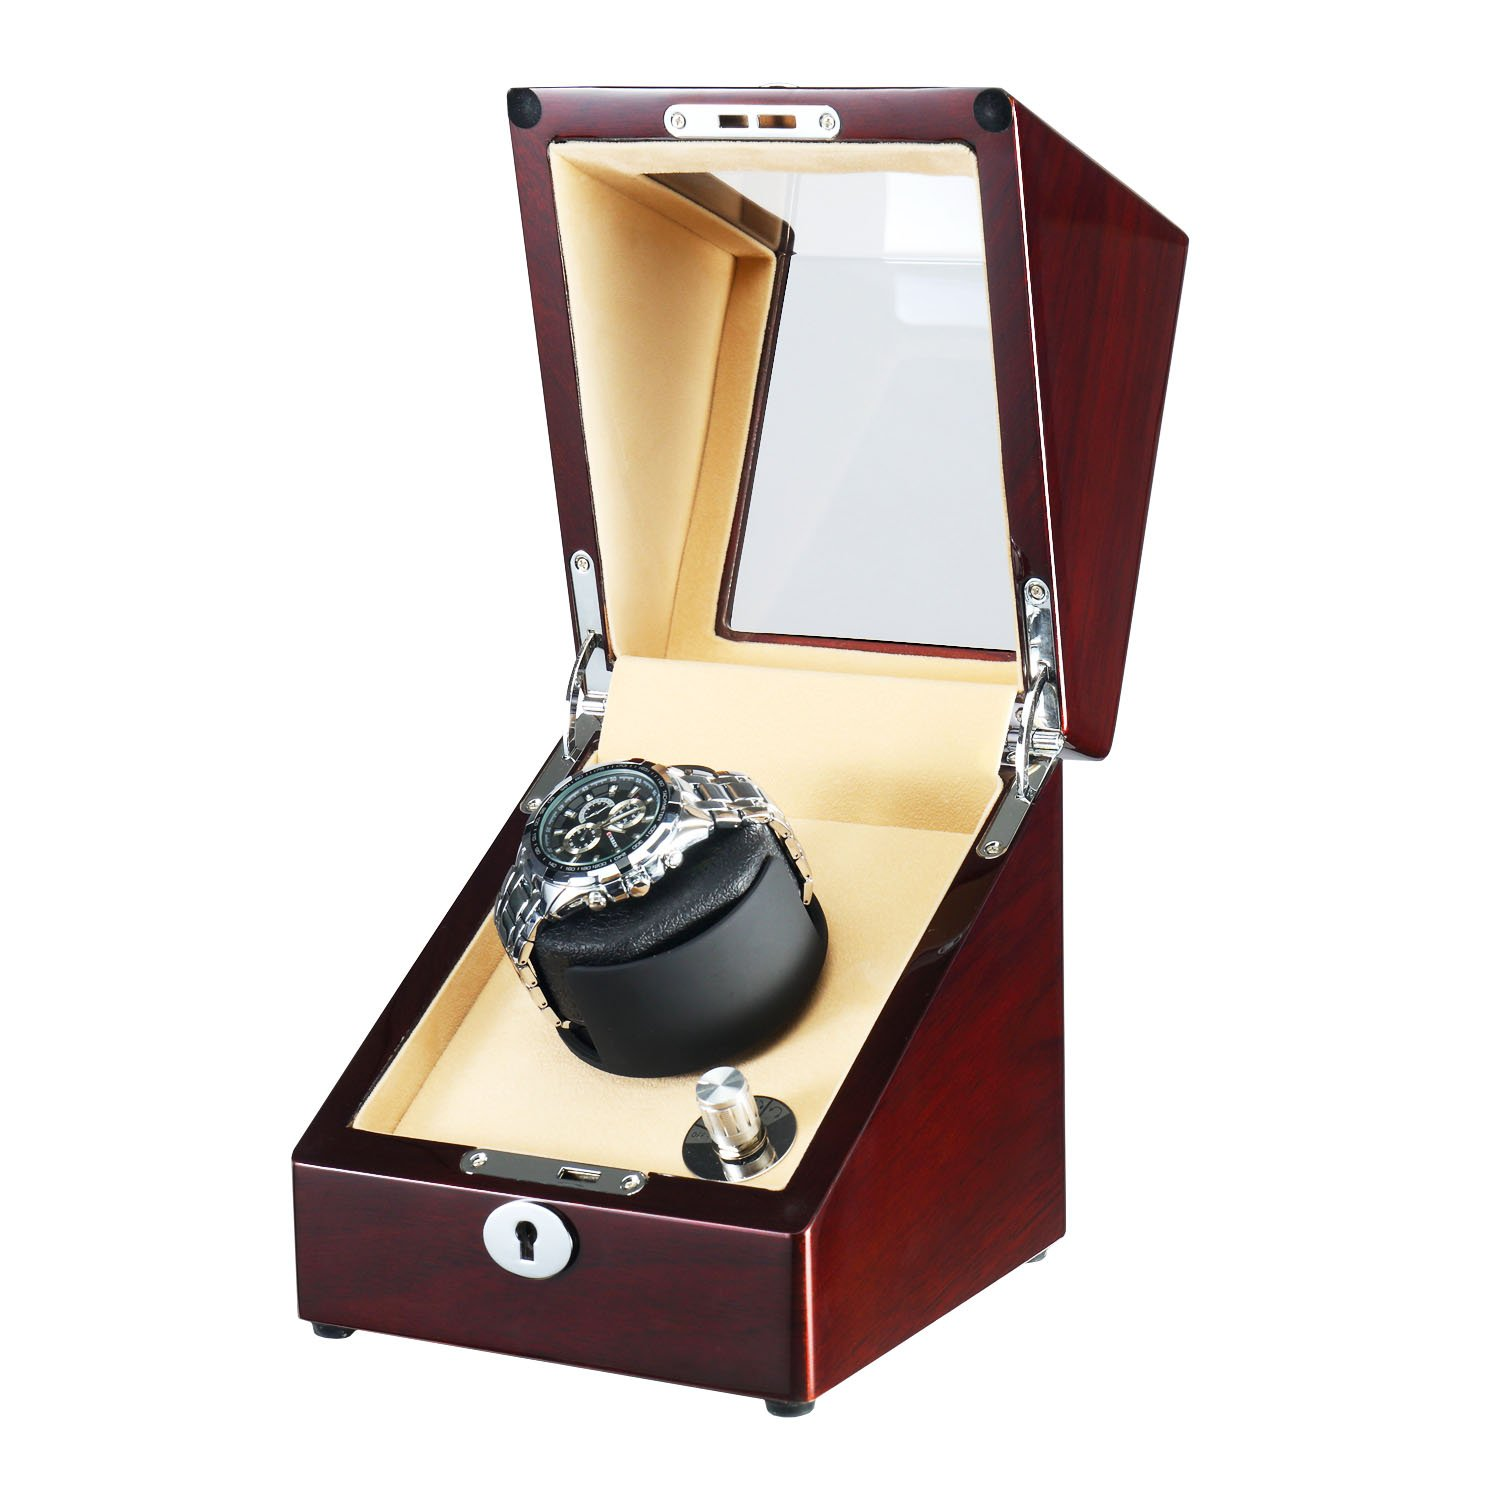 OLYMBROS Wooden Single Rotor Automatic Watch Winder Storage Box